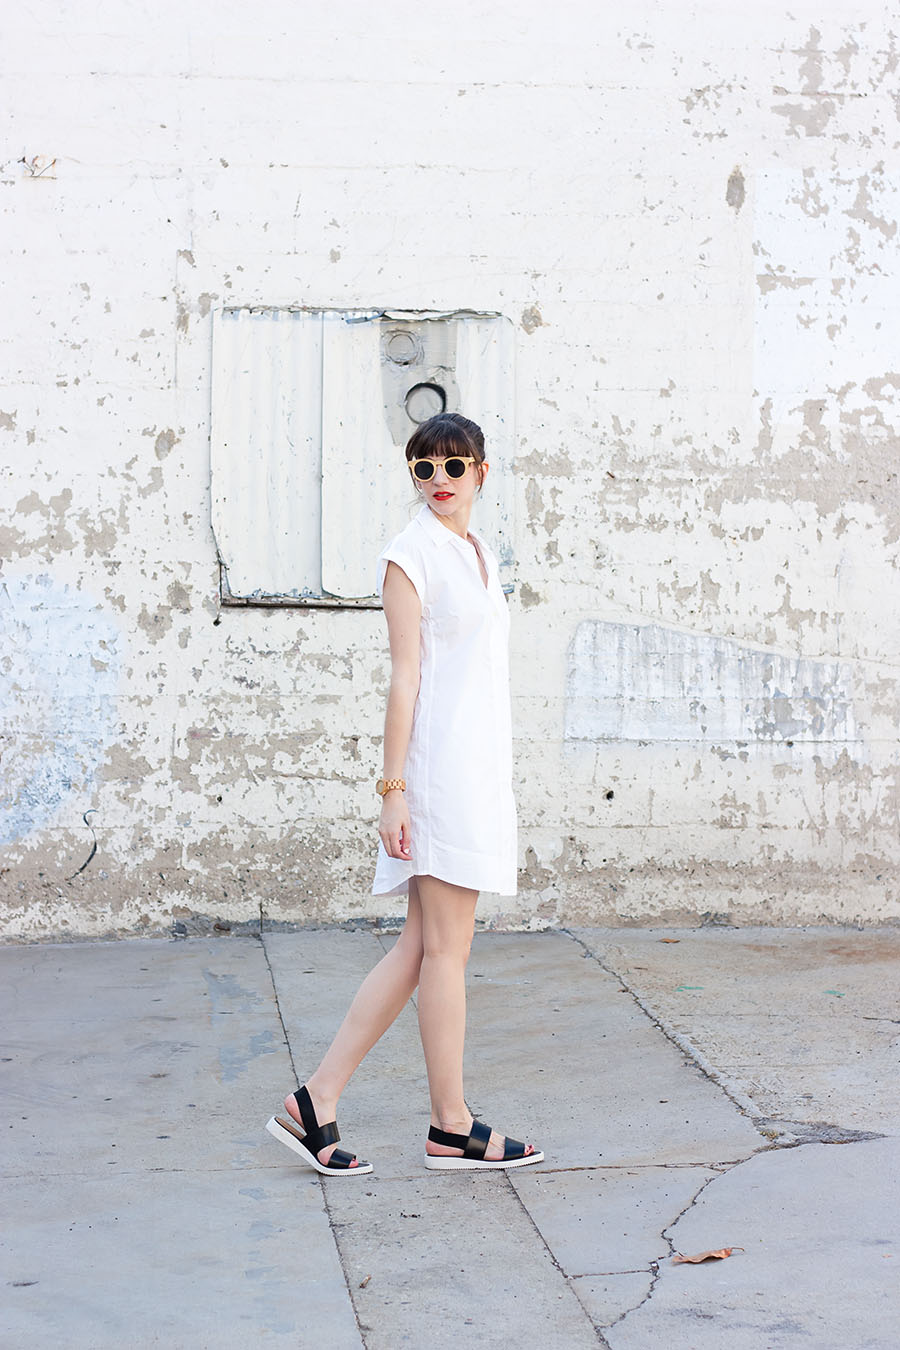 Summer Shirtdress, Everlane Street Sandal, Panda Sunglasses